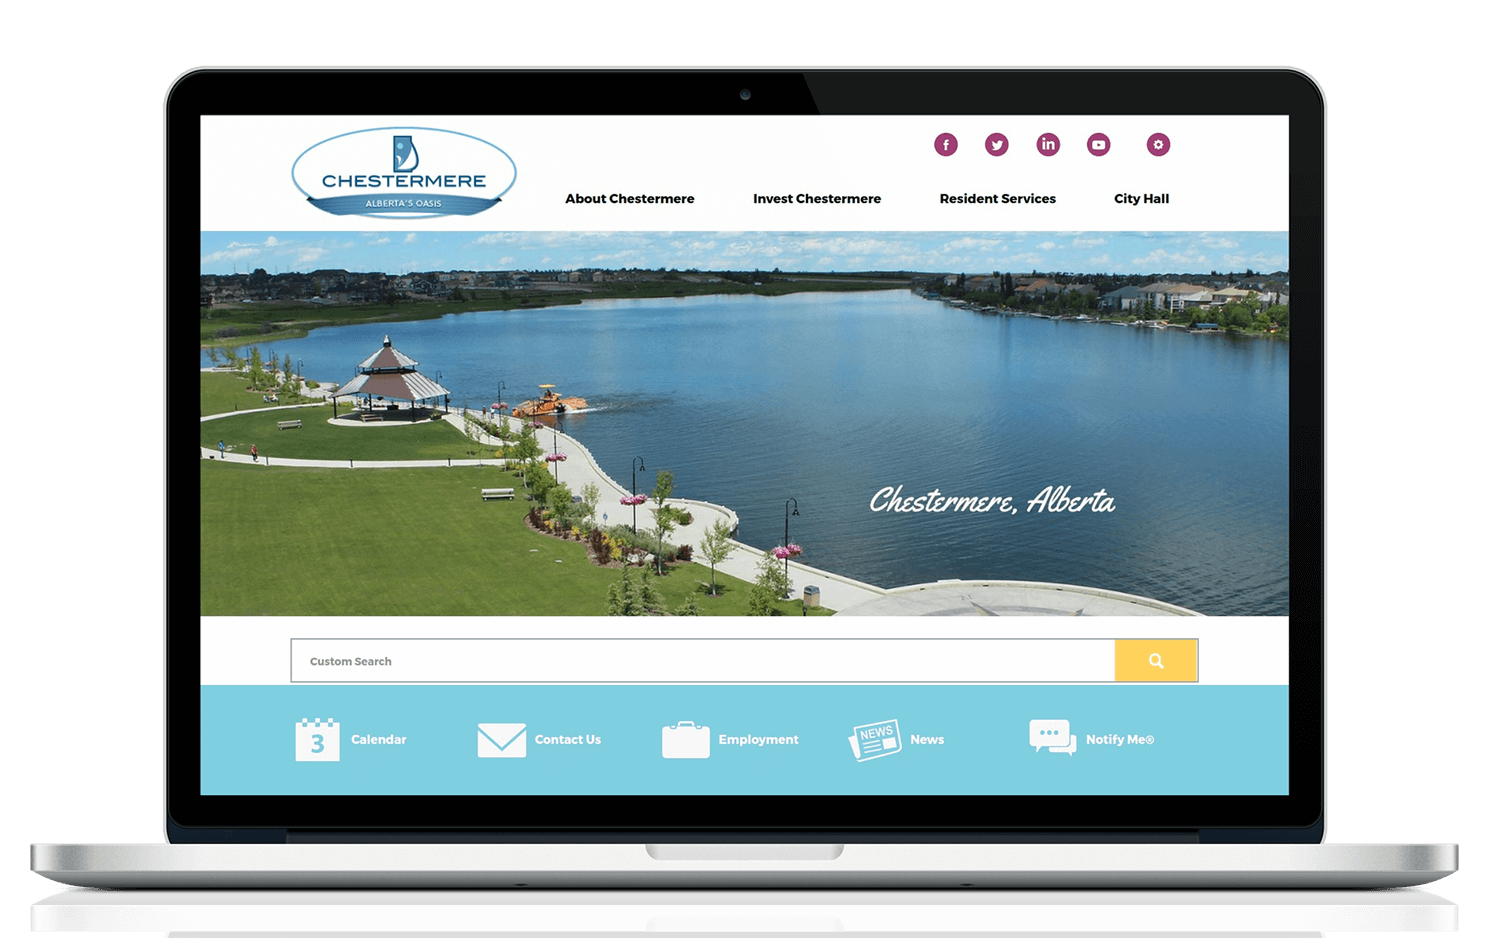 Chestermere_New (1).png